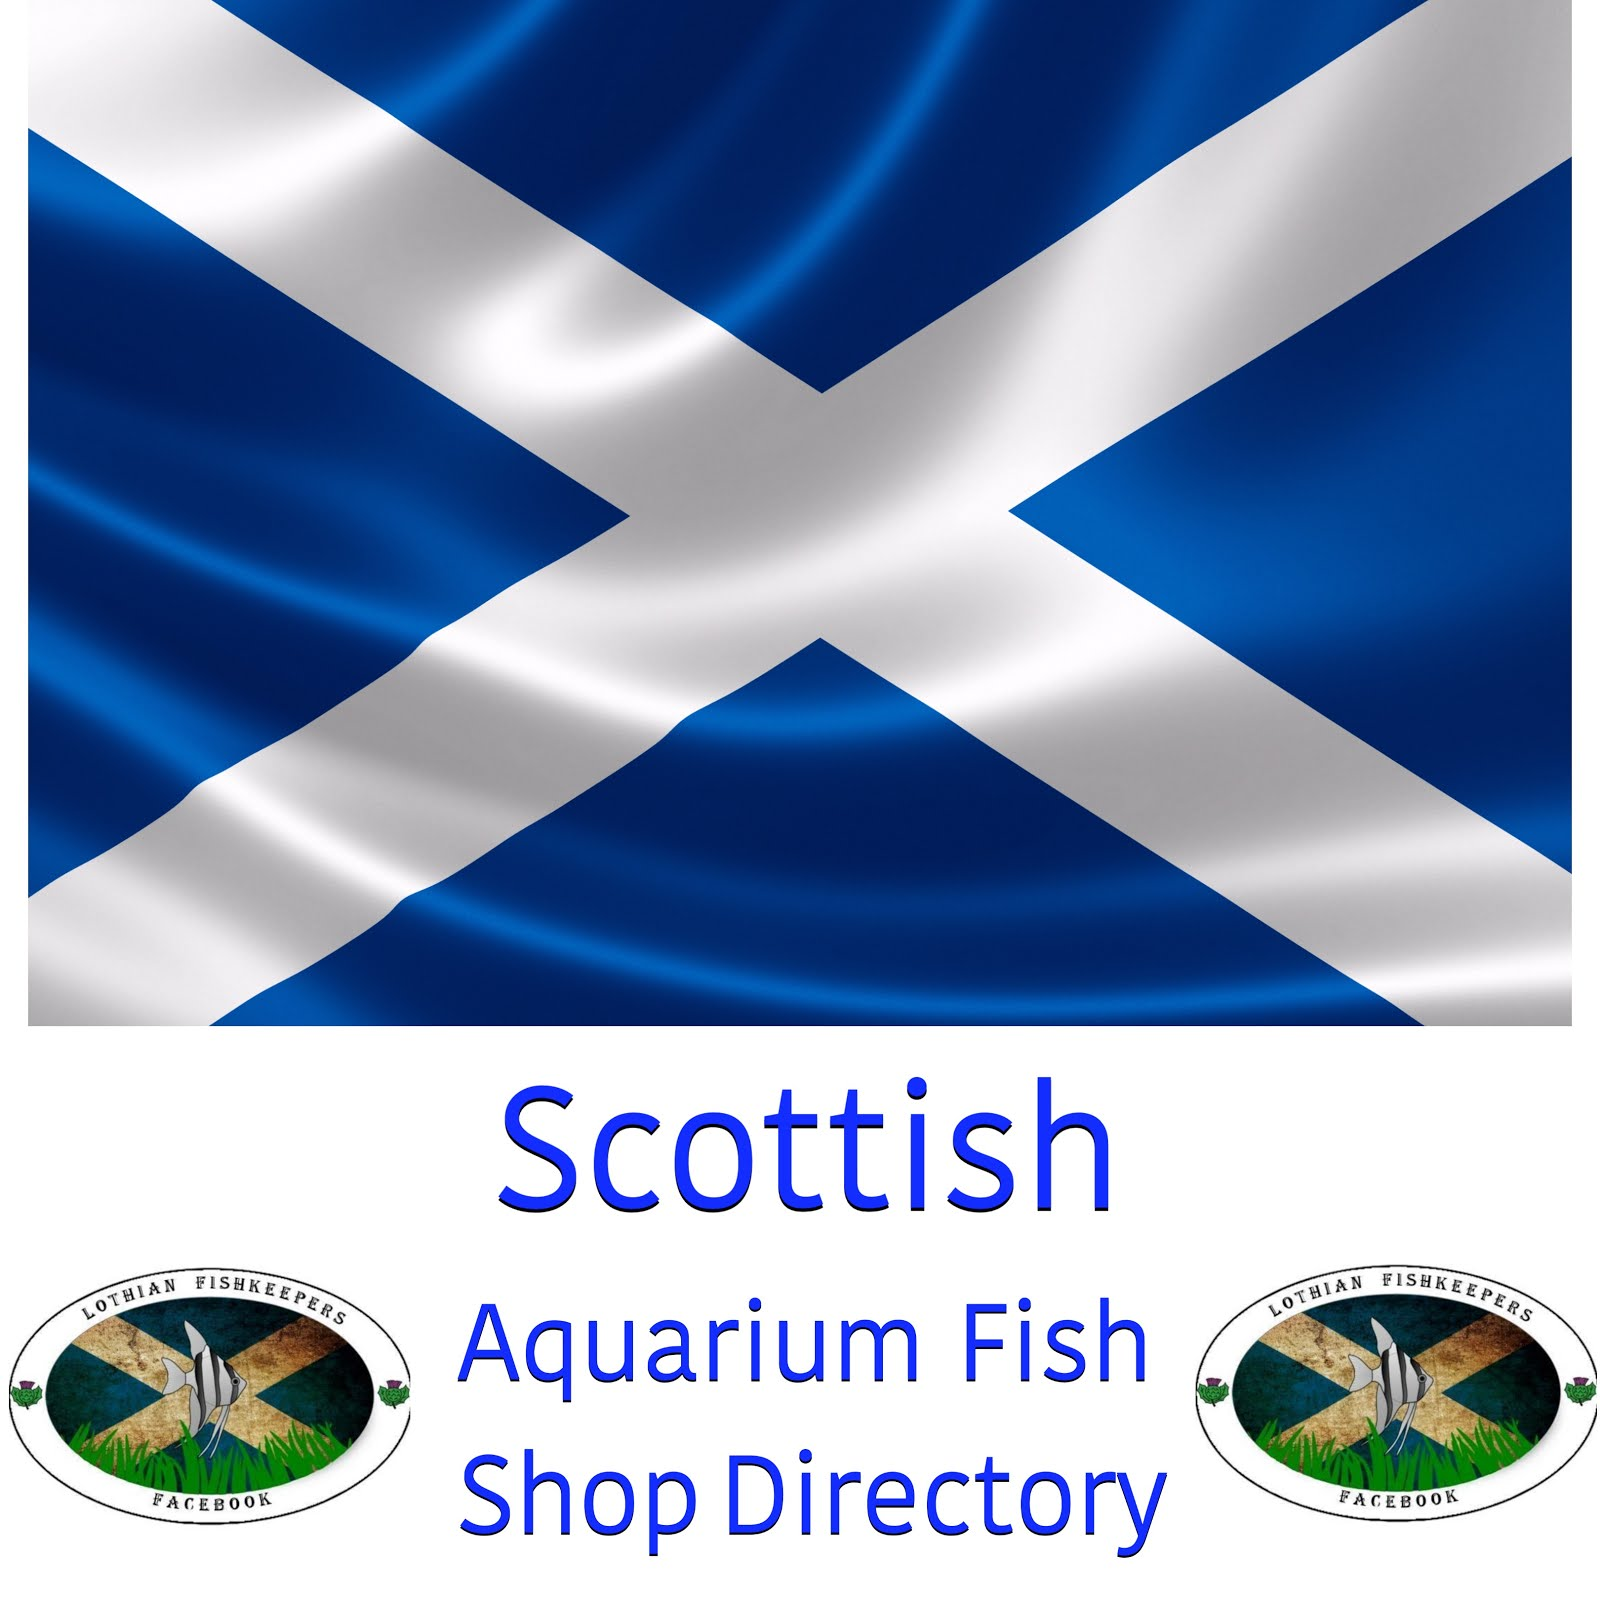 The Scottish Aquarium Fish Shop Directory